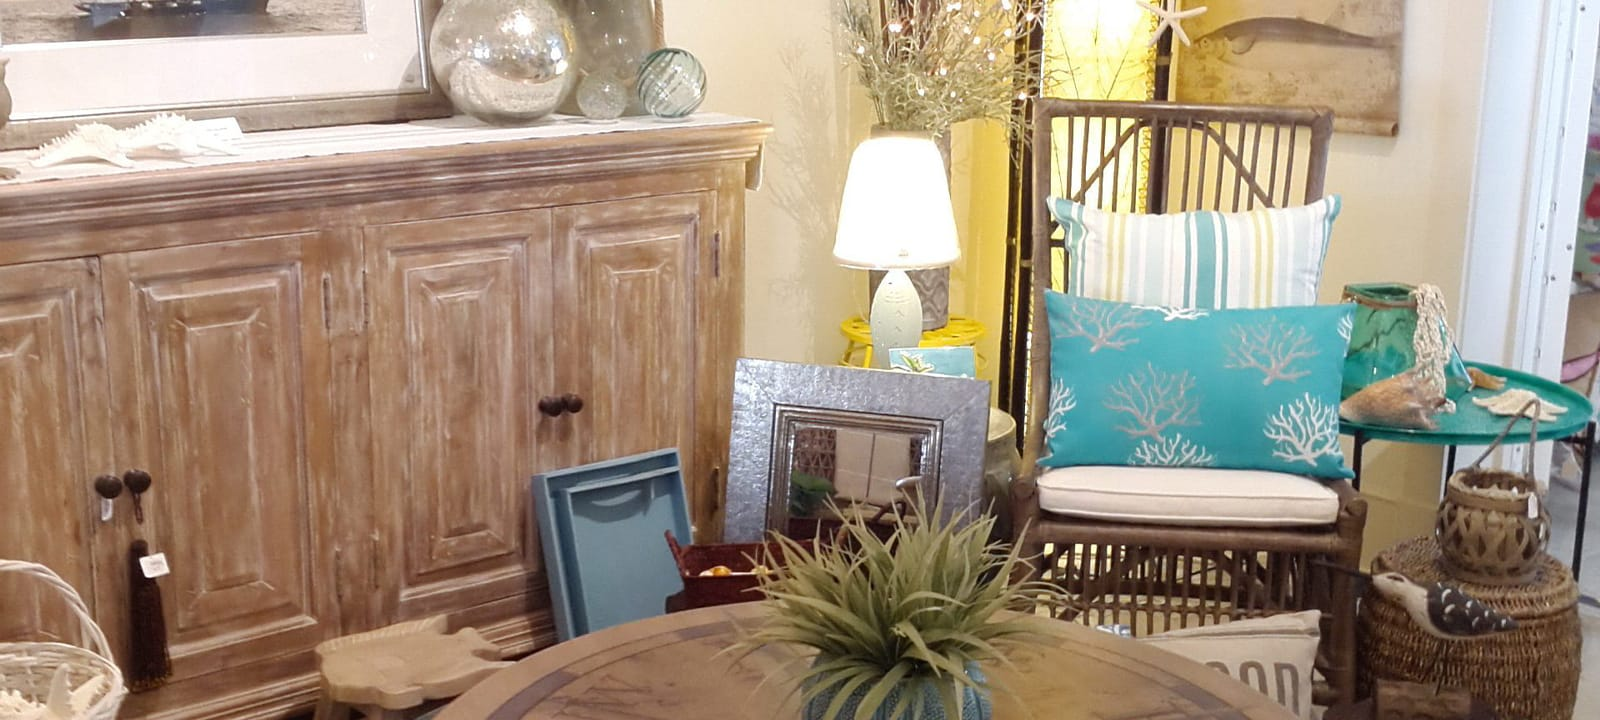 Southern Design Living Southwest Florida Furniture Store